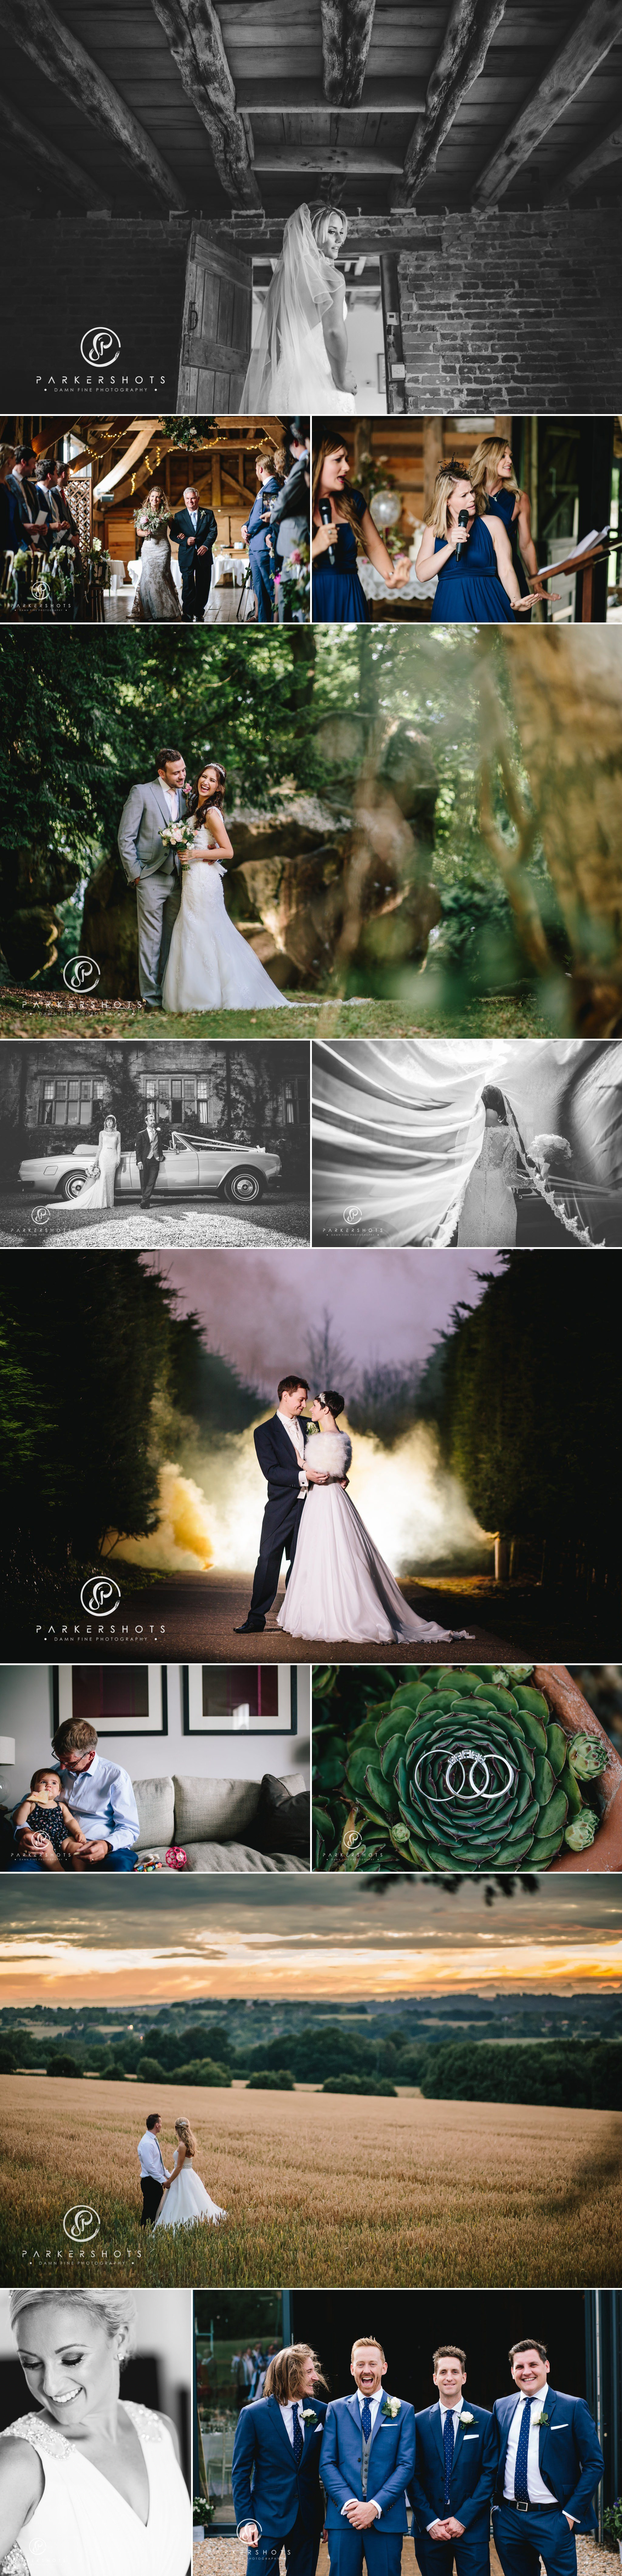 best wedding photography 7